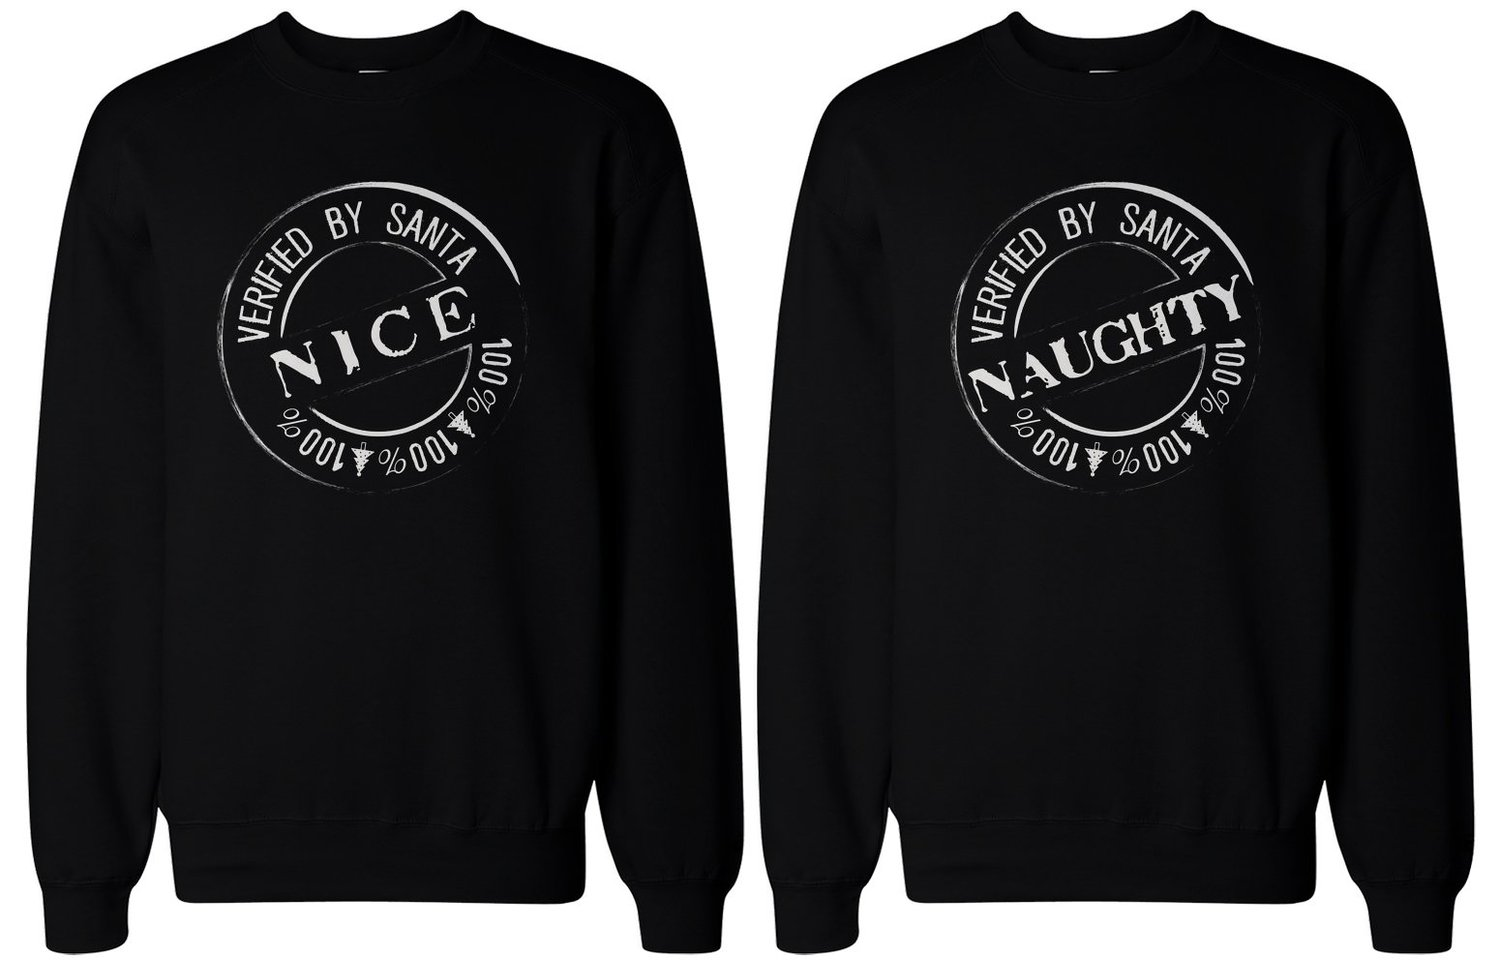 amazoncom christmas gift for bff naughty and nice sweatshirts for best friends clothing - Amazon Christmas Gift